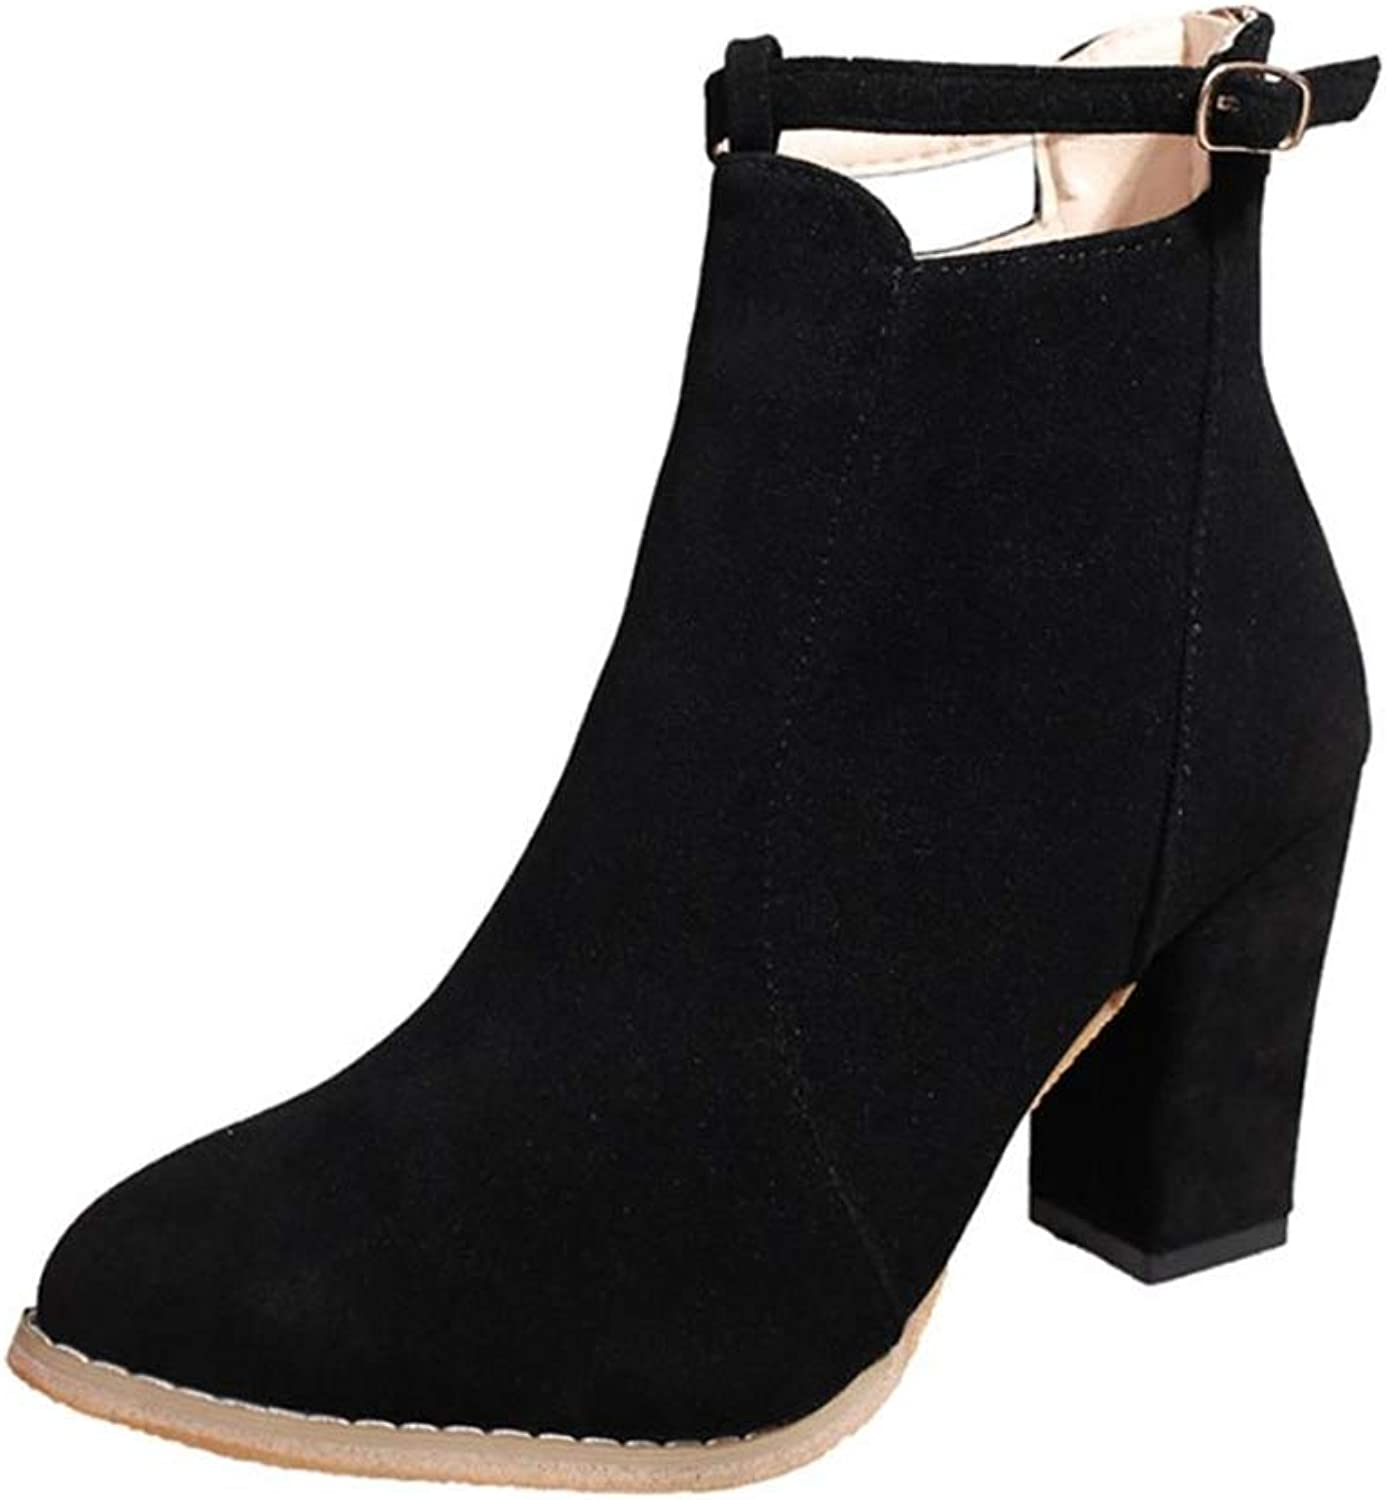 Cici shoes Womens Ginny Faux Leather Stacked Heel Studded Ankle Boots